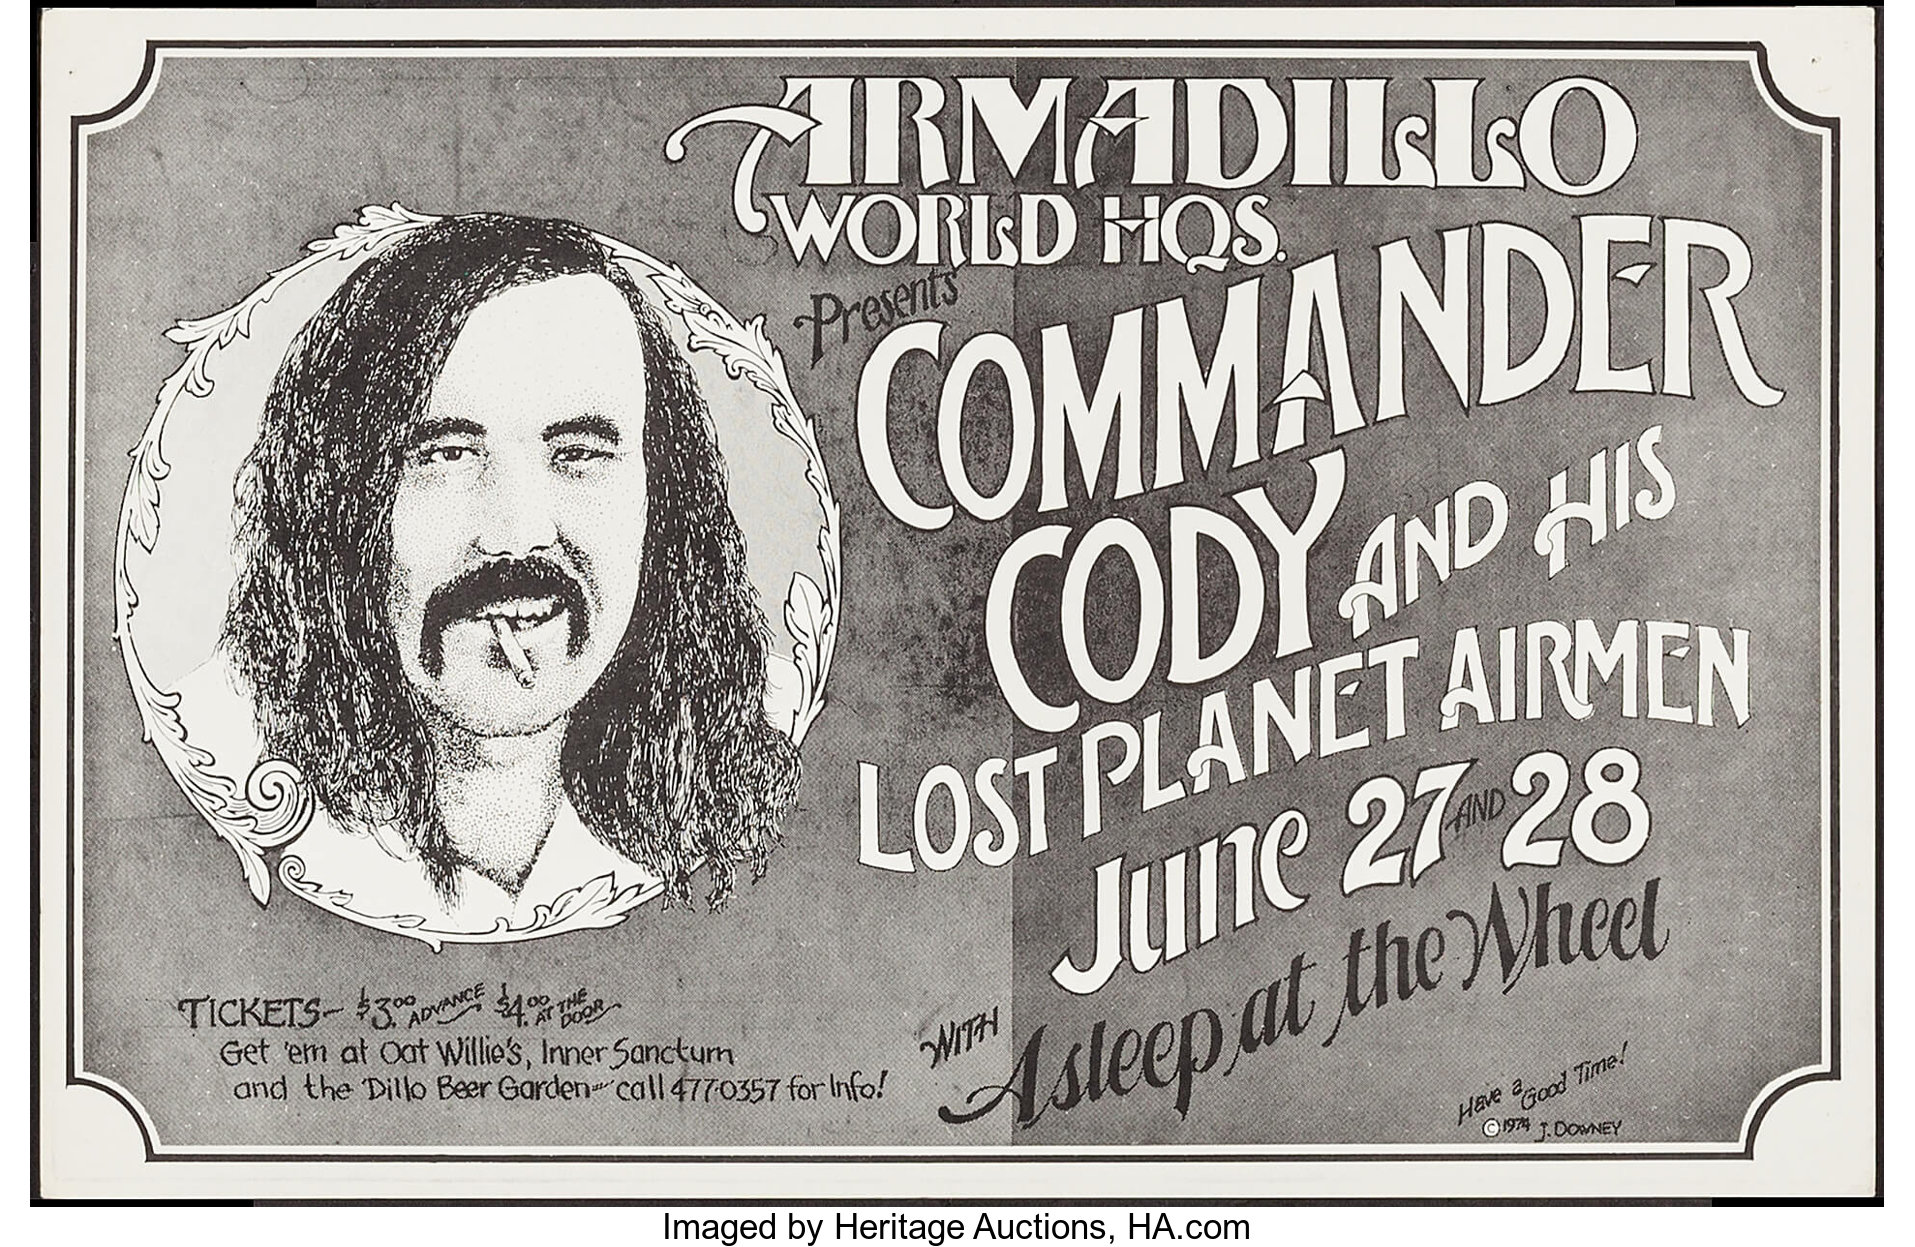 Commander Cody and His Lost Planet Airmen at The Armadillo World | Lot  #53097 | Heritage Auctions